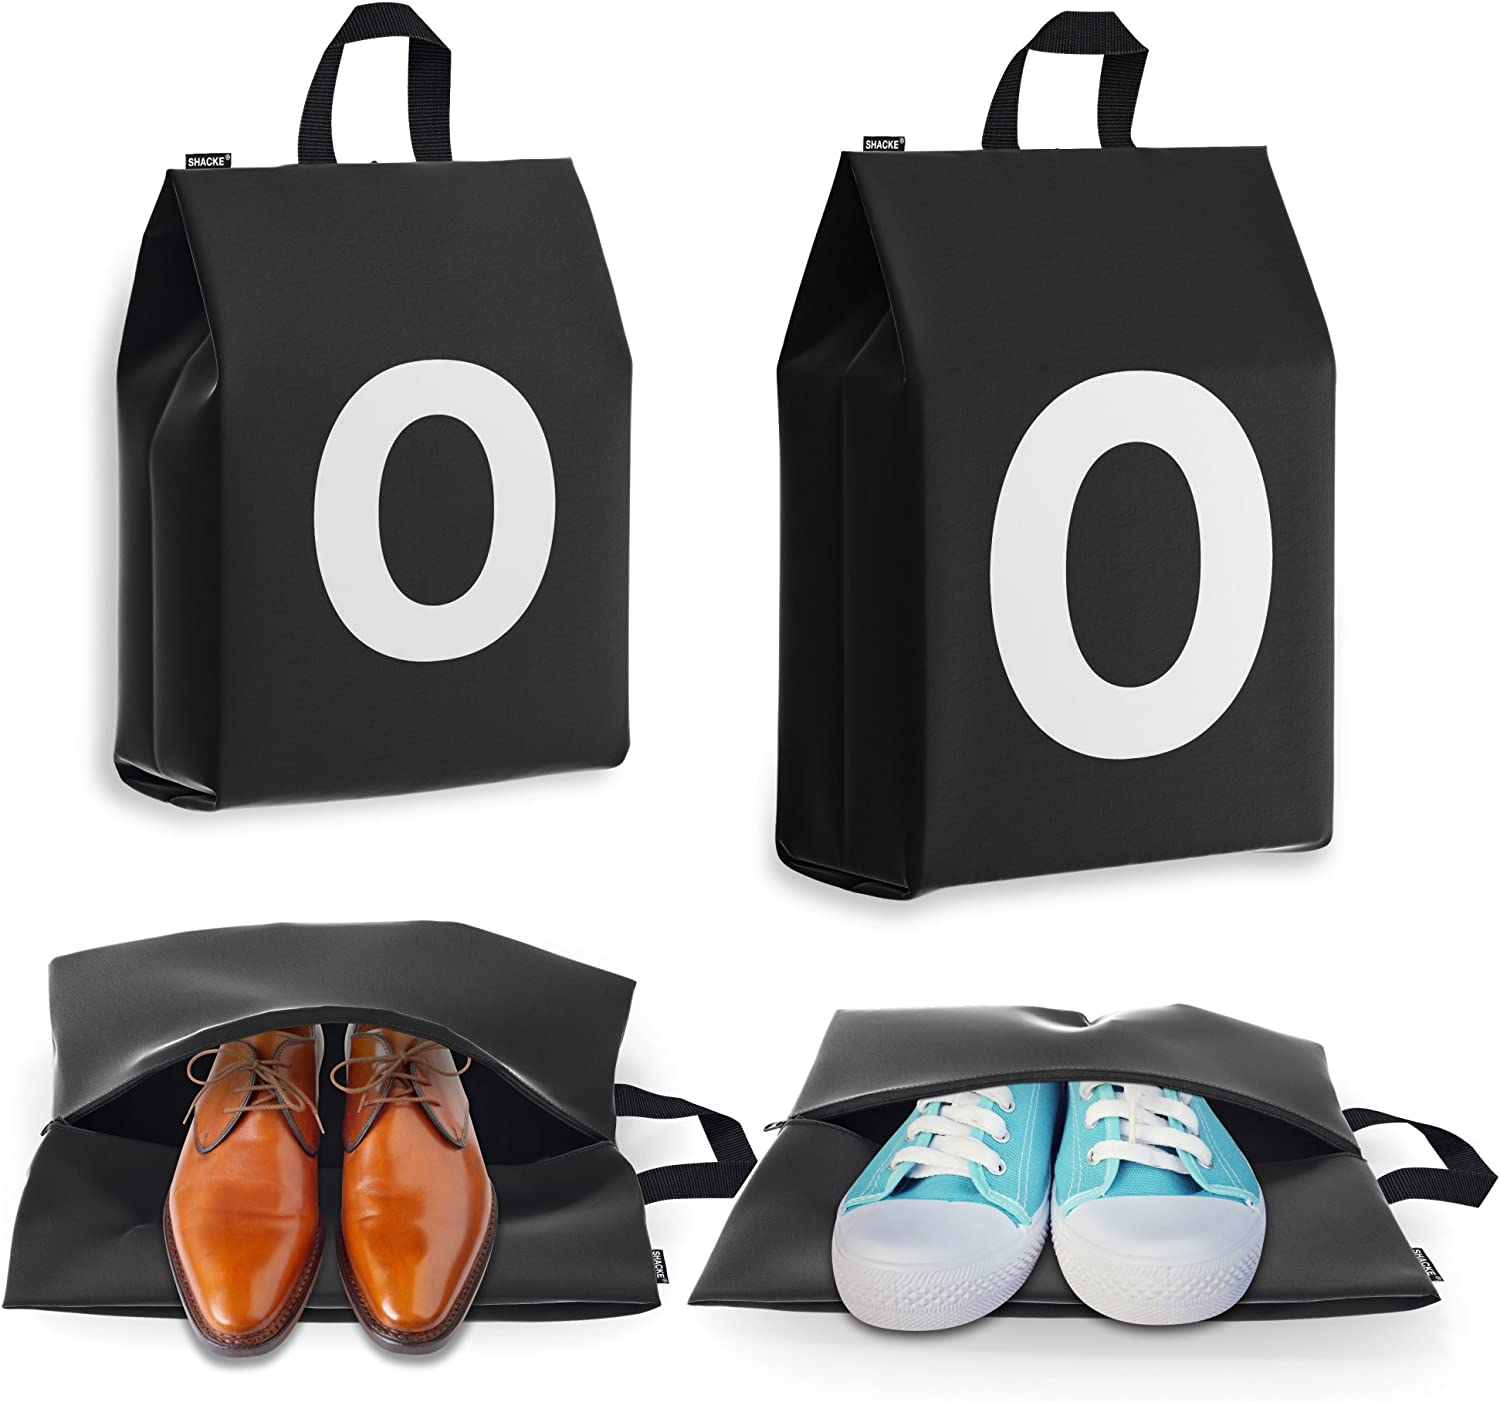 Personalized Initial Shoe Bags for Travel for Men and Women 4pk